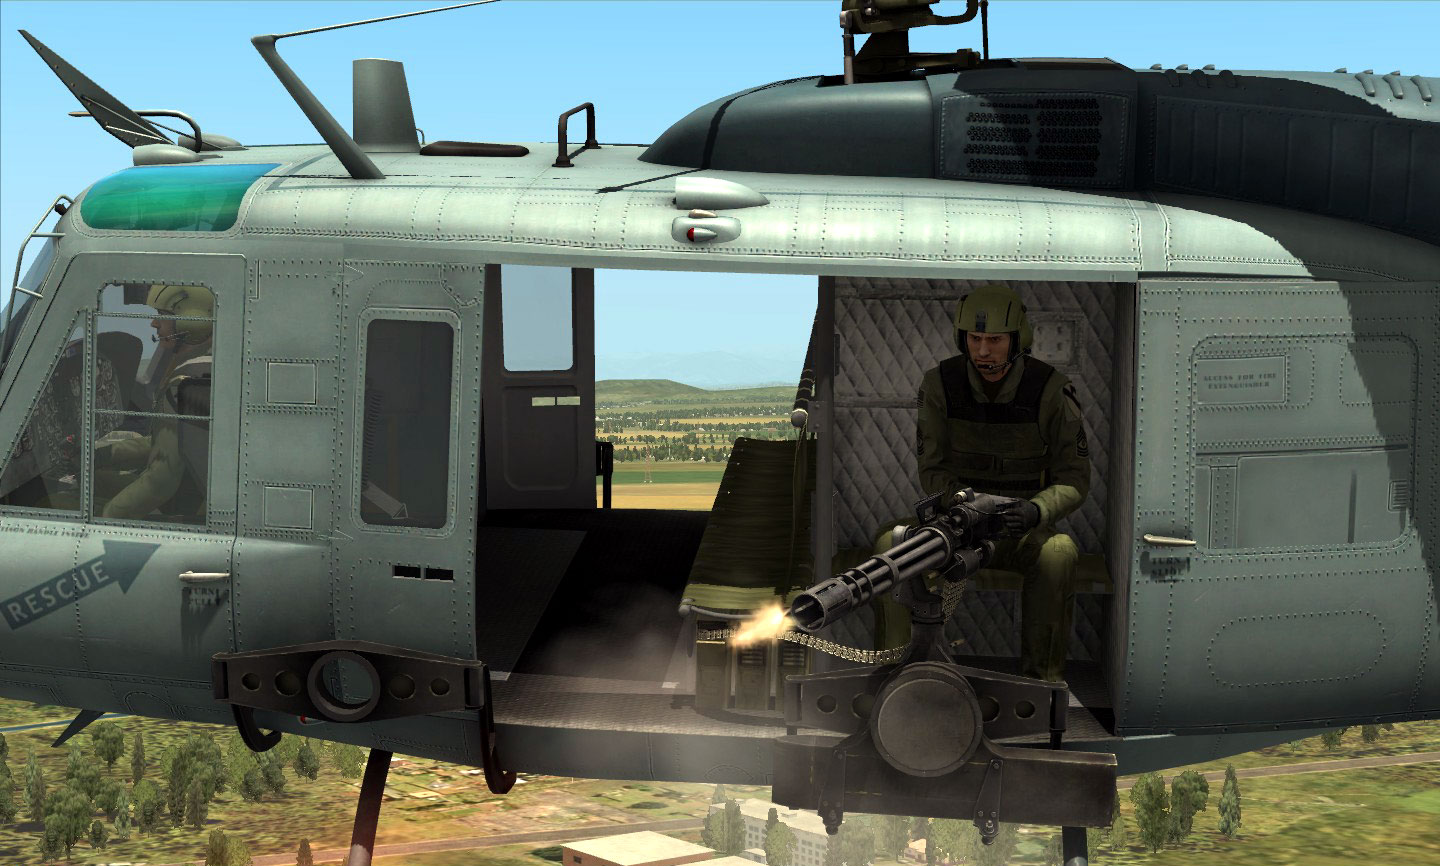 I was anxiously waiting for this official update because I heard that -finally- the AI door gunners of the Huey were given brains eyes and trigger fingers. & Real and Simulated Wars: DCS Updated to Version 1.2.7 - Now ...